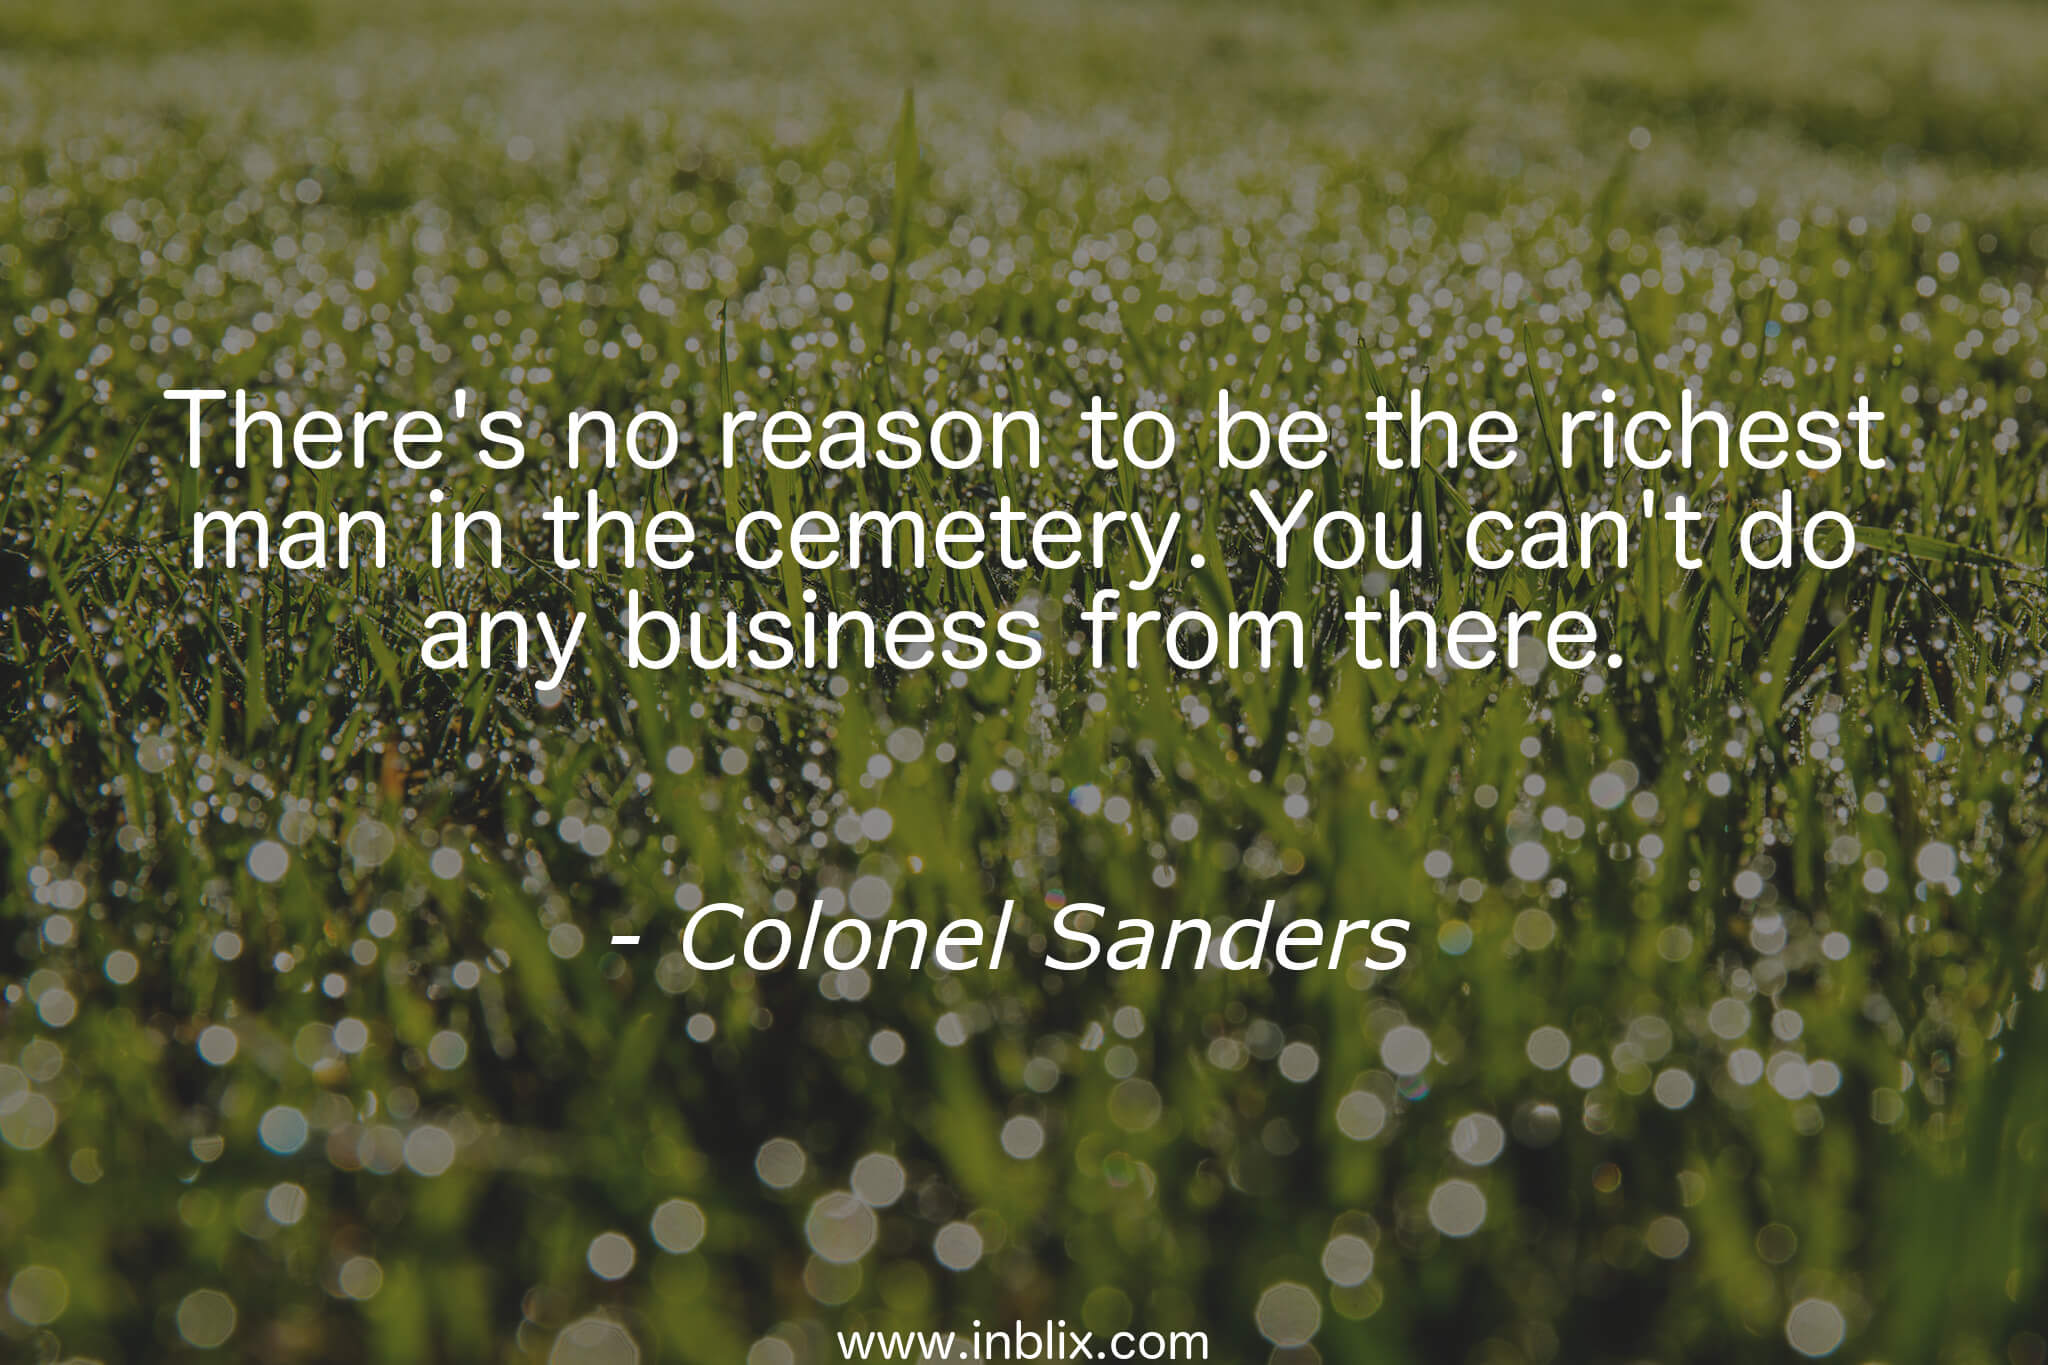 There's no reason to be the richest man in the cemetery. You can't do any business from there.